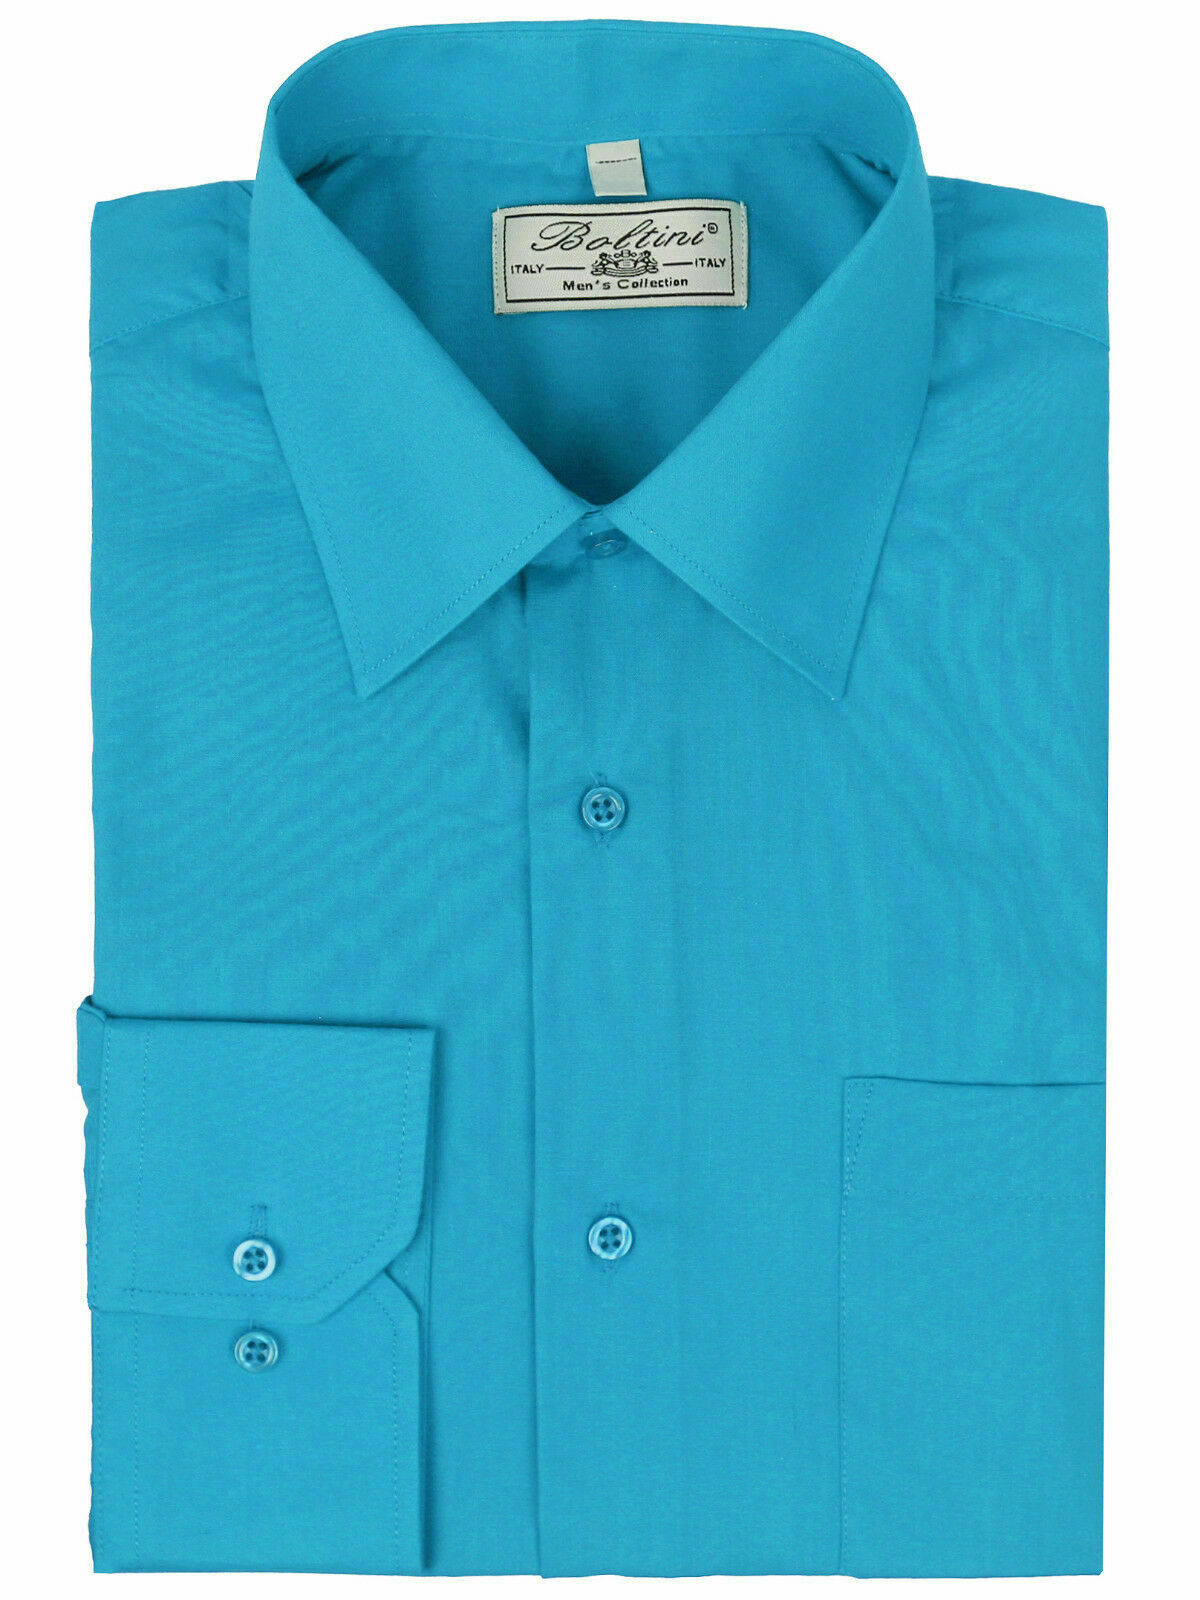 Boltini Italy Men's Casual Long Sleeve Solid Barrel Cuff Turquoise Dress Shirt